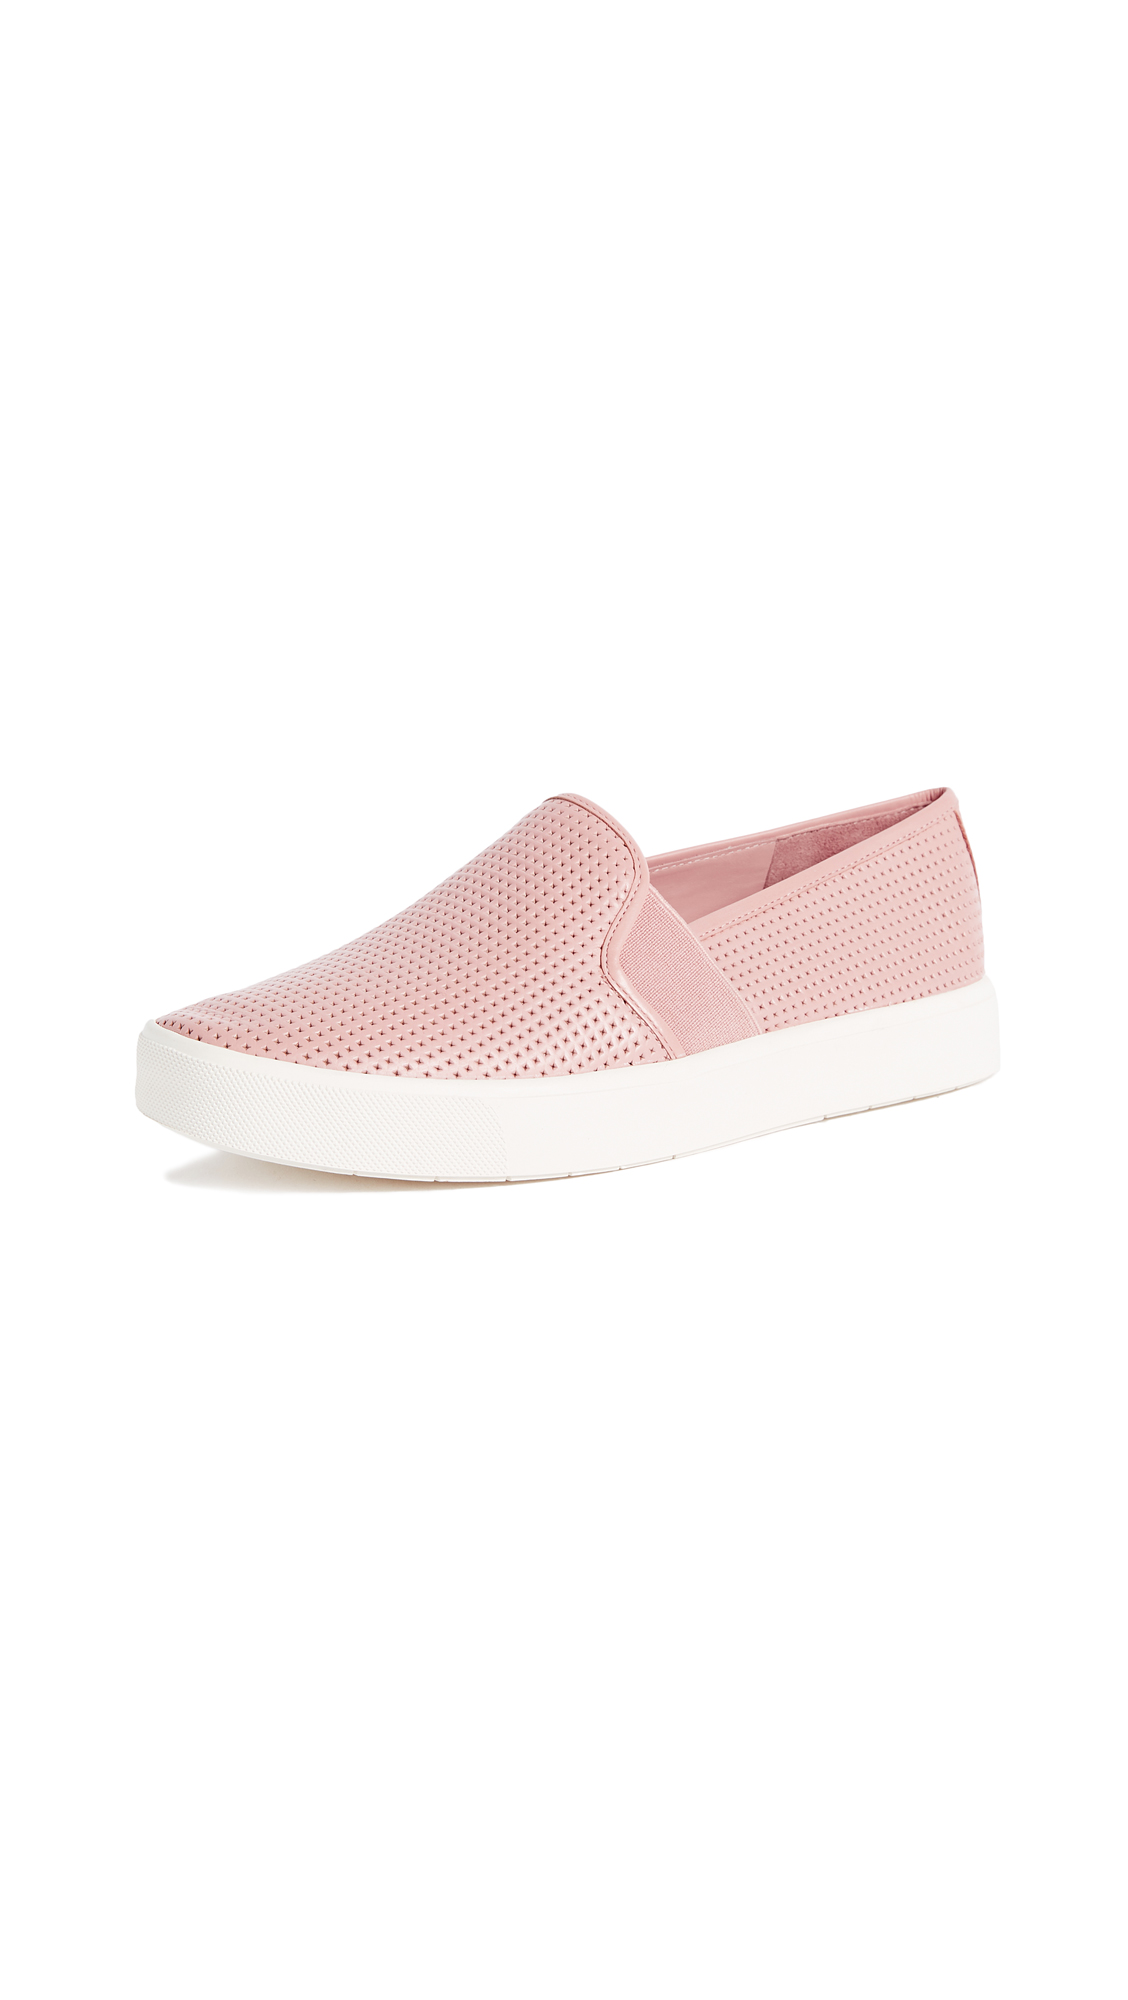 Vince Blair Slip On Sneakers - Rose